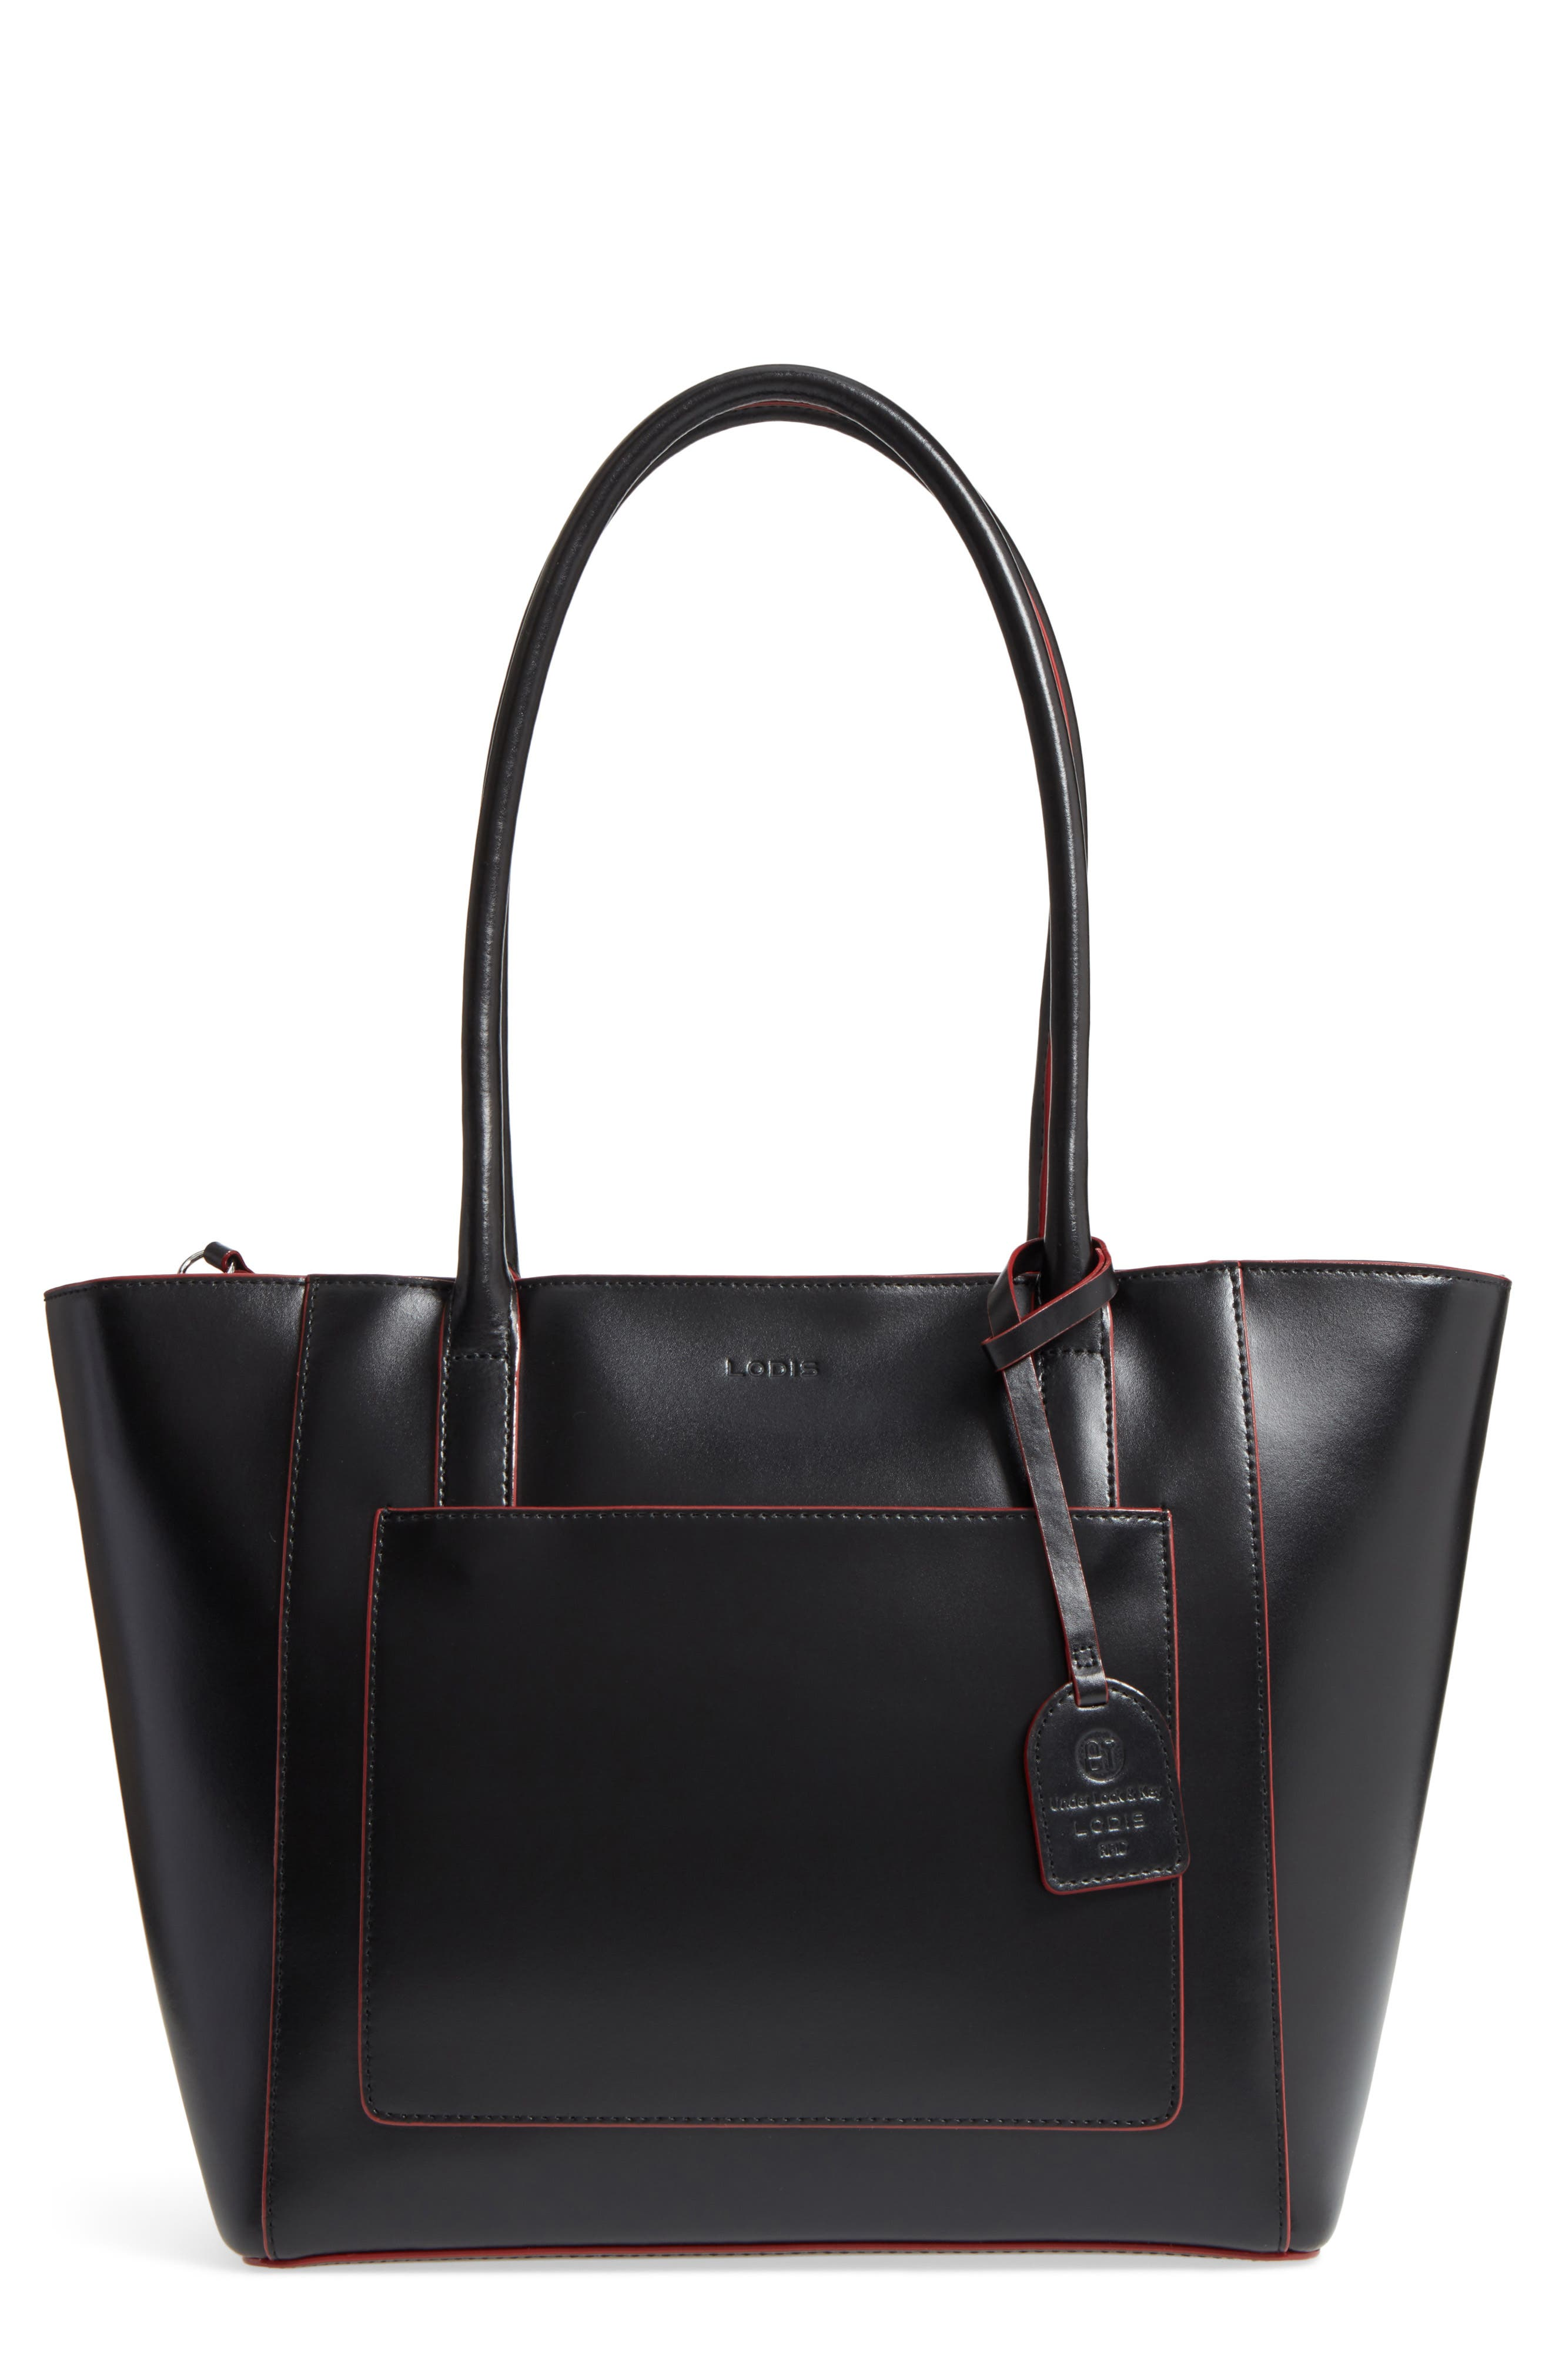 Lodis Medium Margaret Leather Tote with Zip Pouch